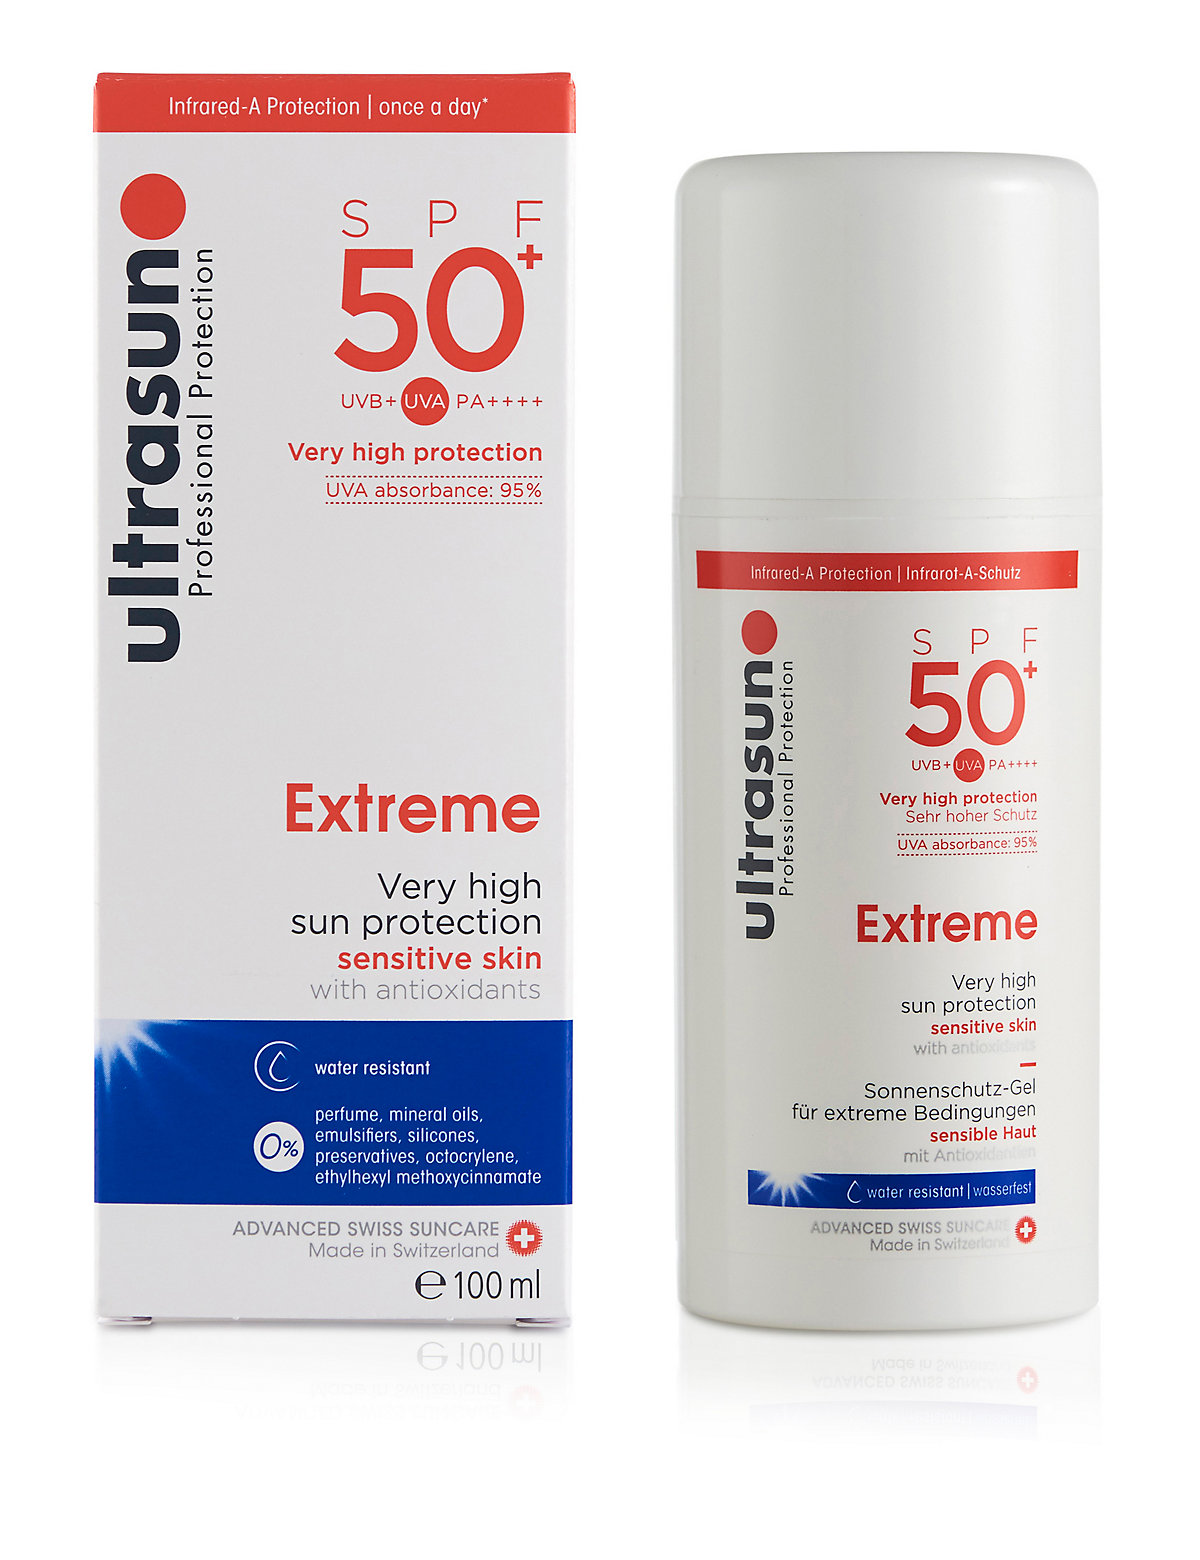 Ultrasun Very High Protection Sun Cream for Ultra Sensitive Skin SPF50 100ml